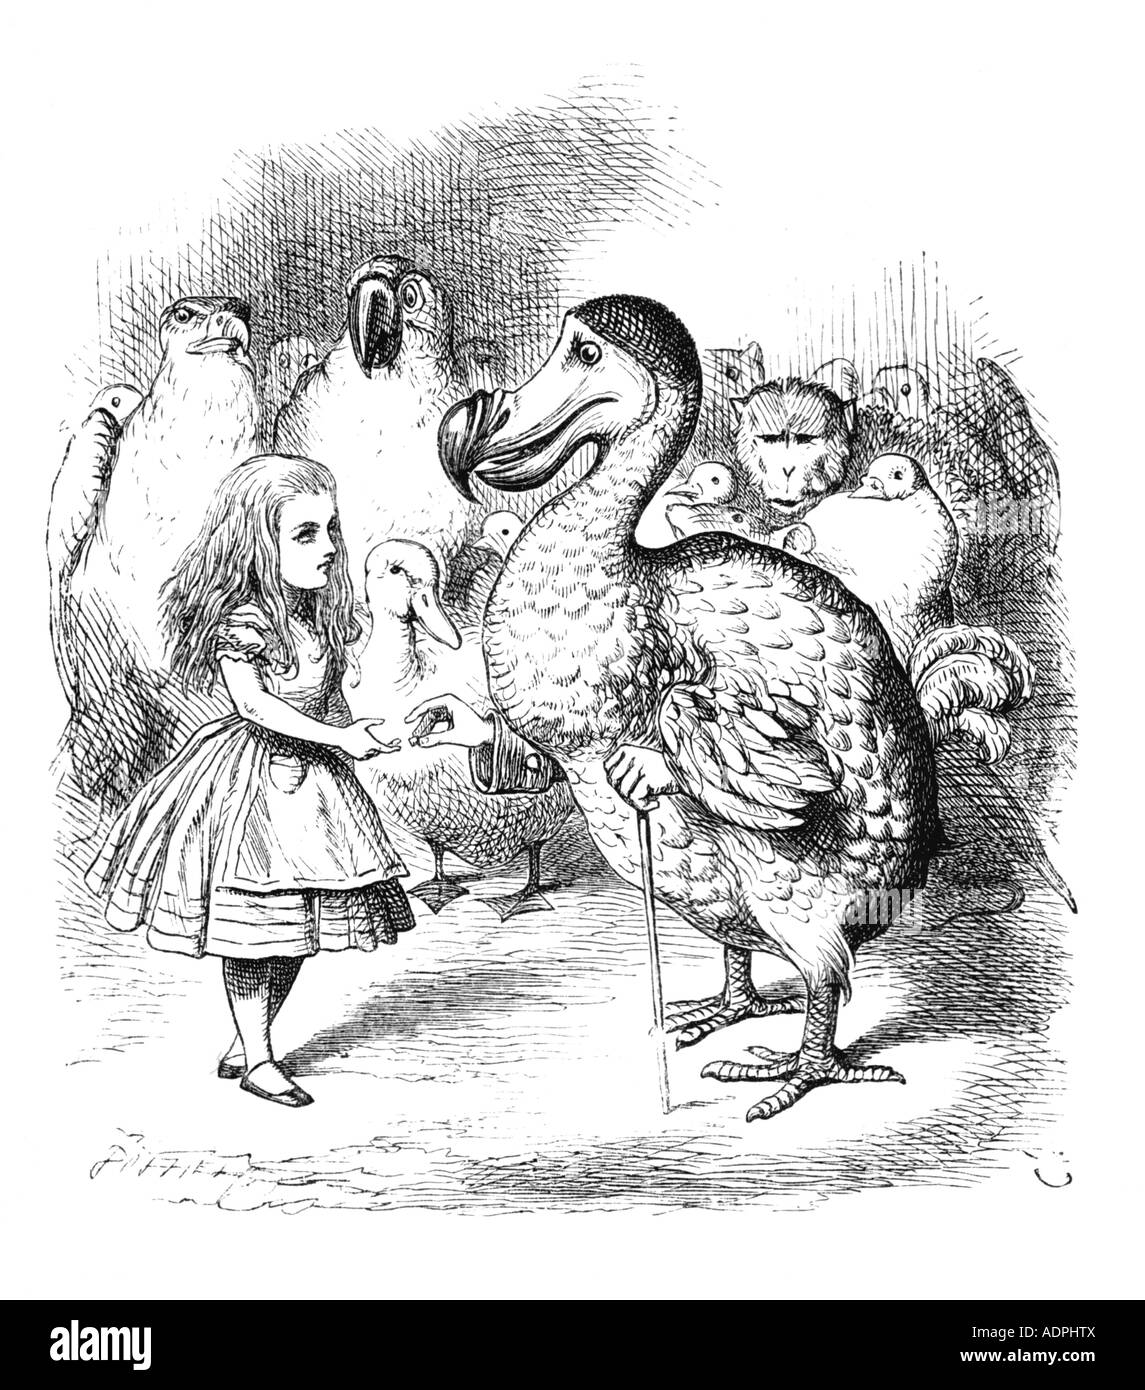 Les illustrations de Lewis Carroll, Alice au Pays des Merveilles par John Tenniel Photo Stock